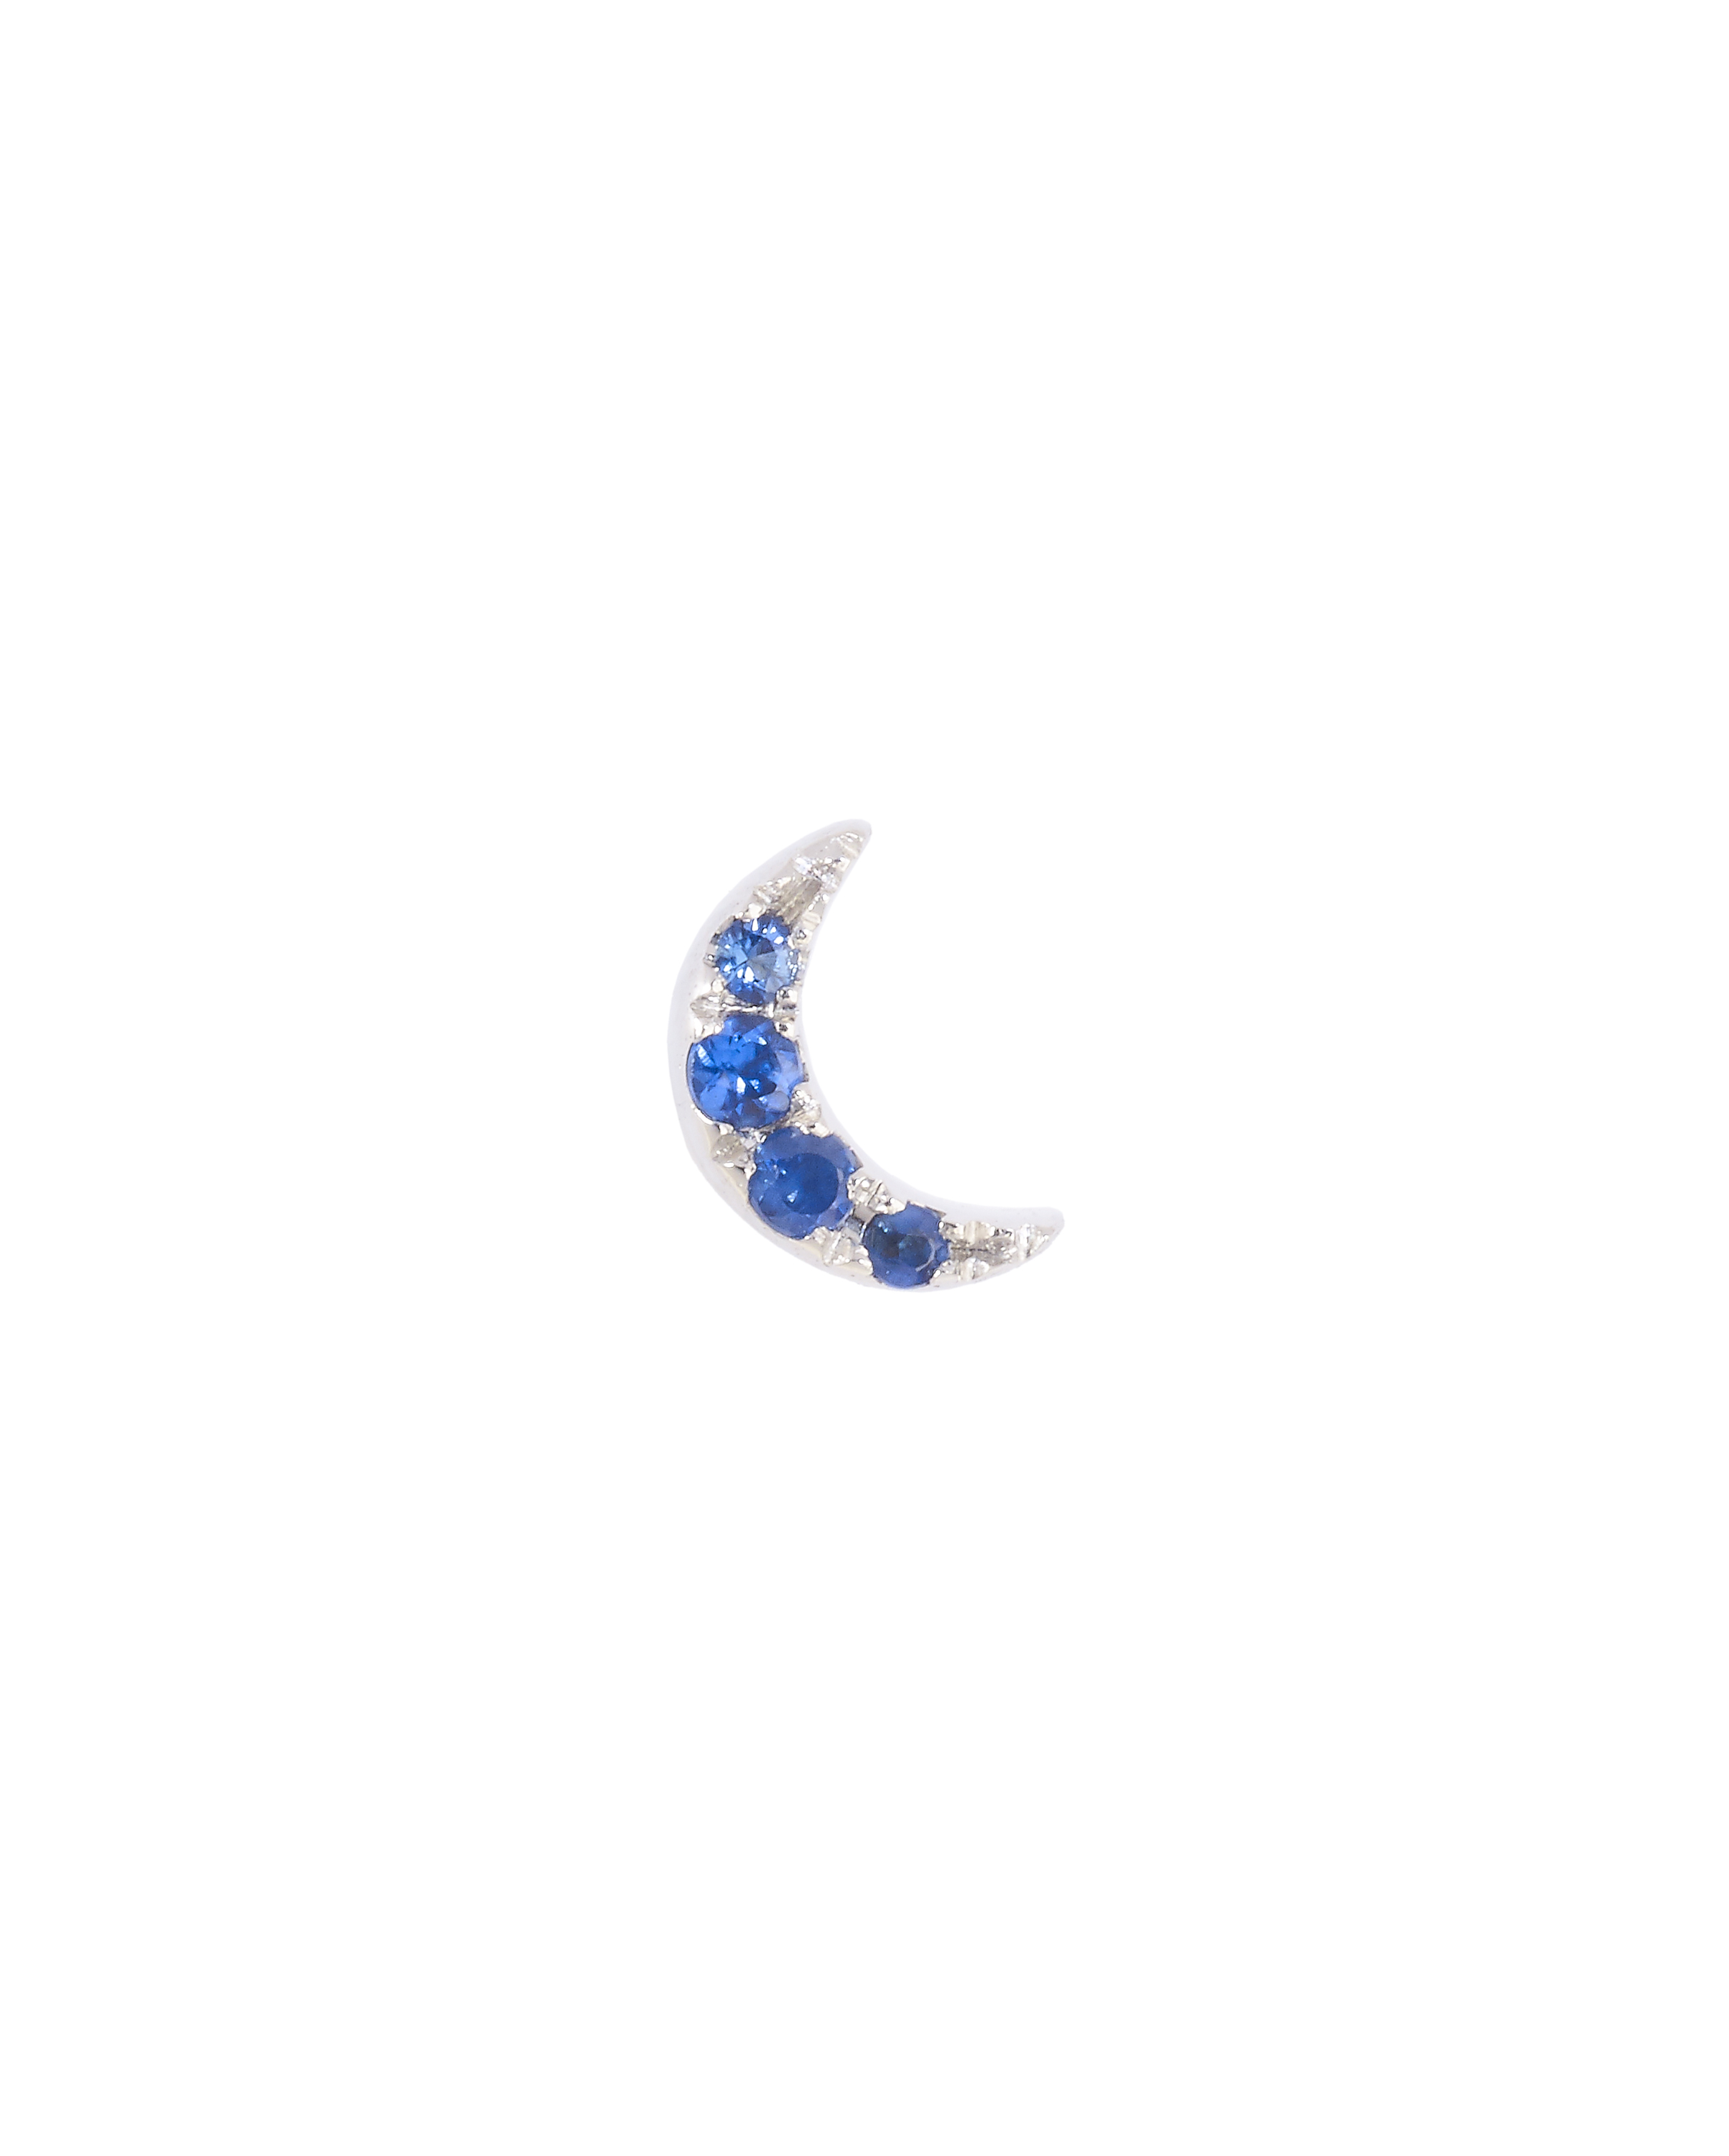 Moonlight Blue Sapphire Earring by Marmari on curated-crowd.com